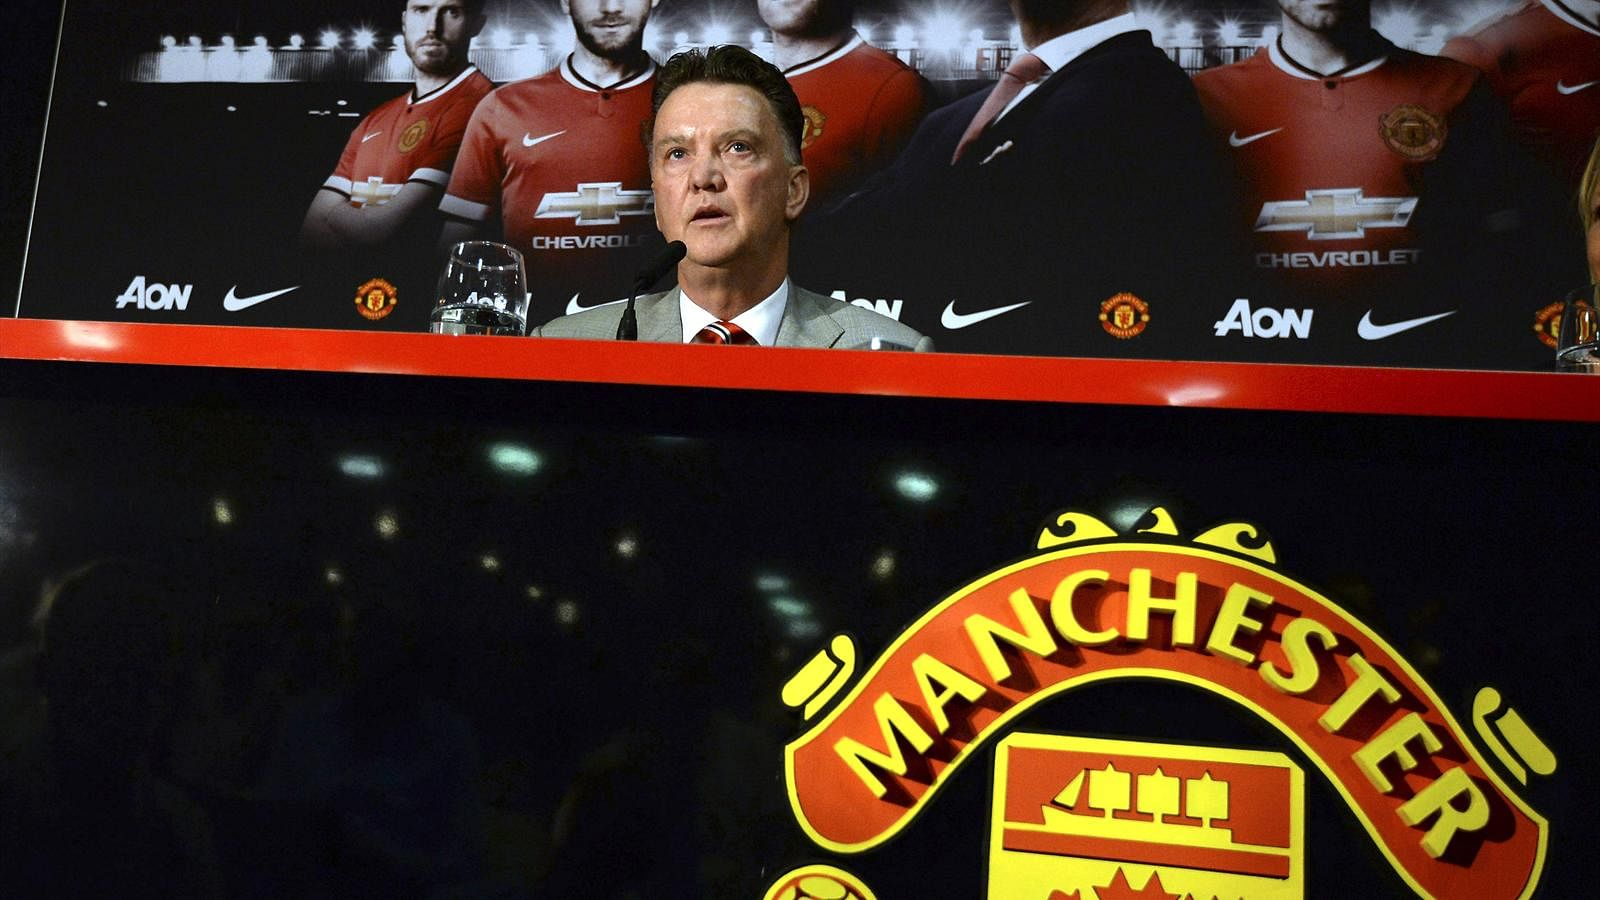 Van Gaal's Strong Personality Tailor-made For Manchester